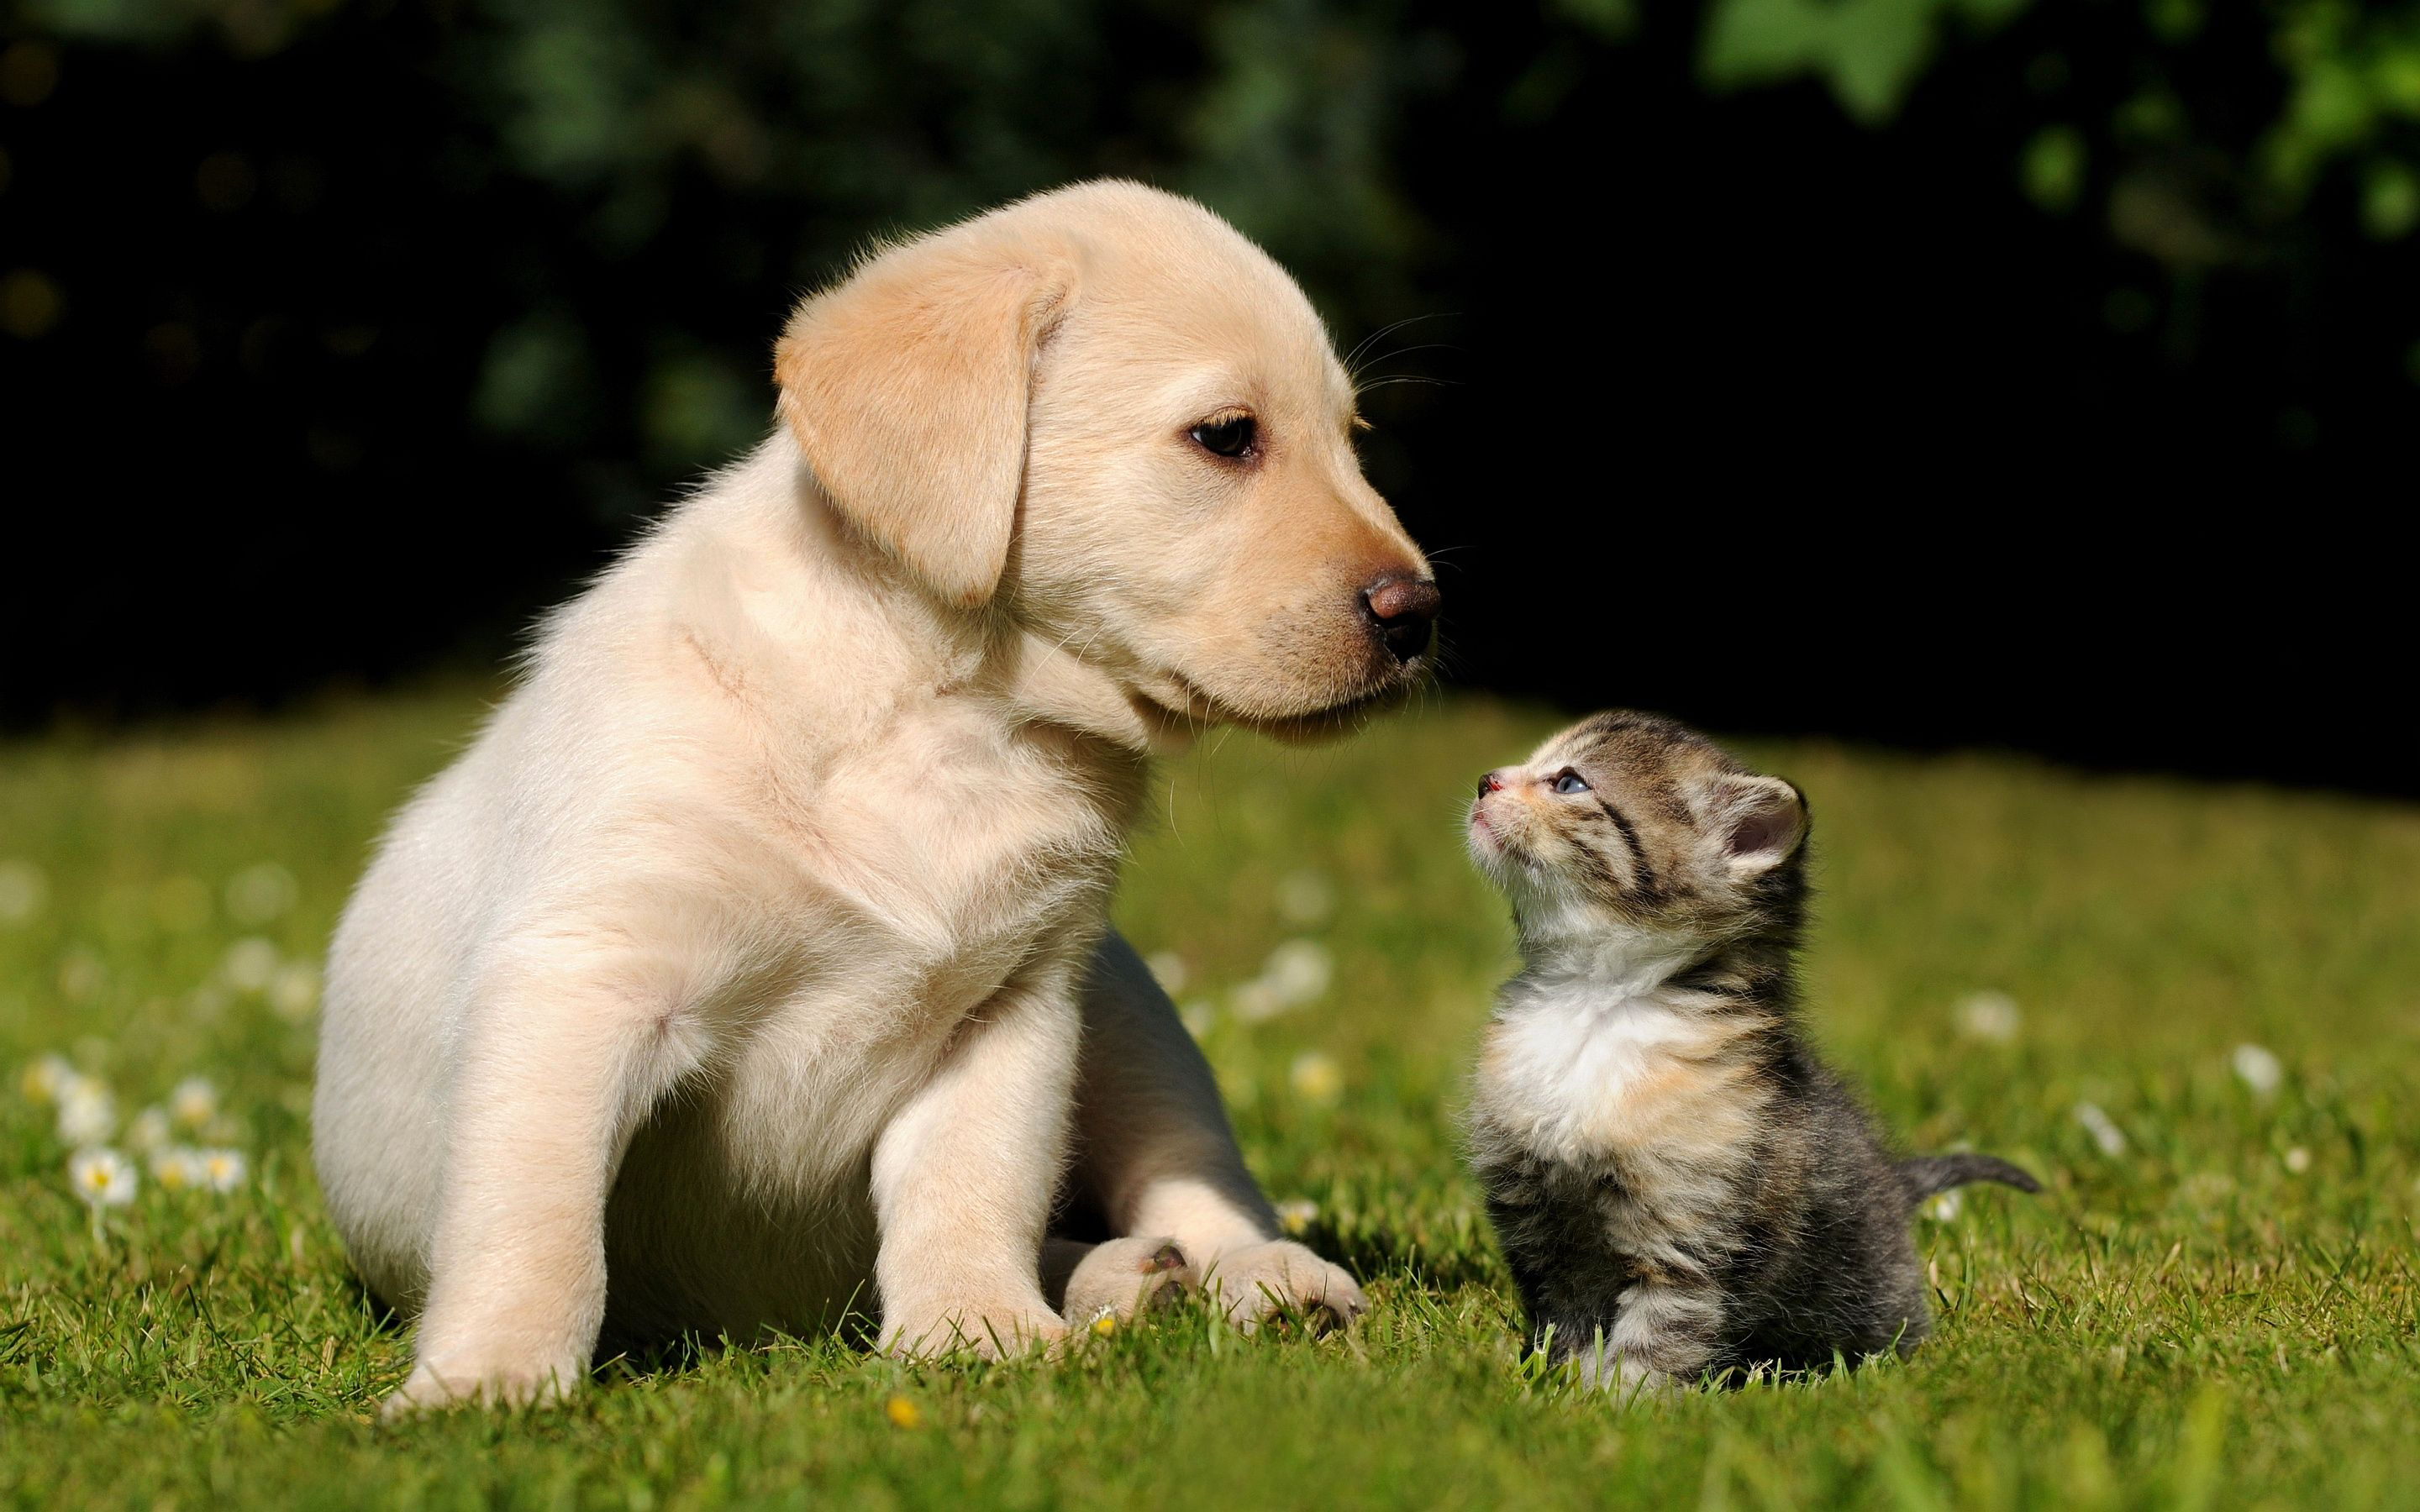 Pin By Tee Uhl On Baby Animals Better Focus Cute Puppies And Kittens Kittens And Puppies Retriever Puppy